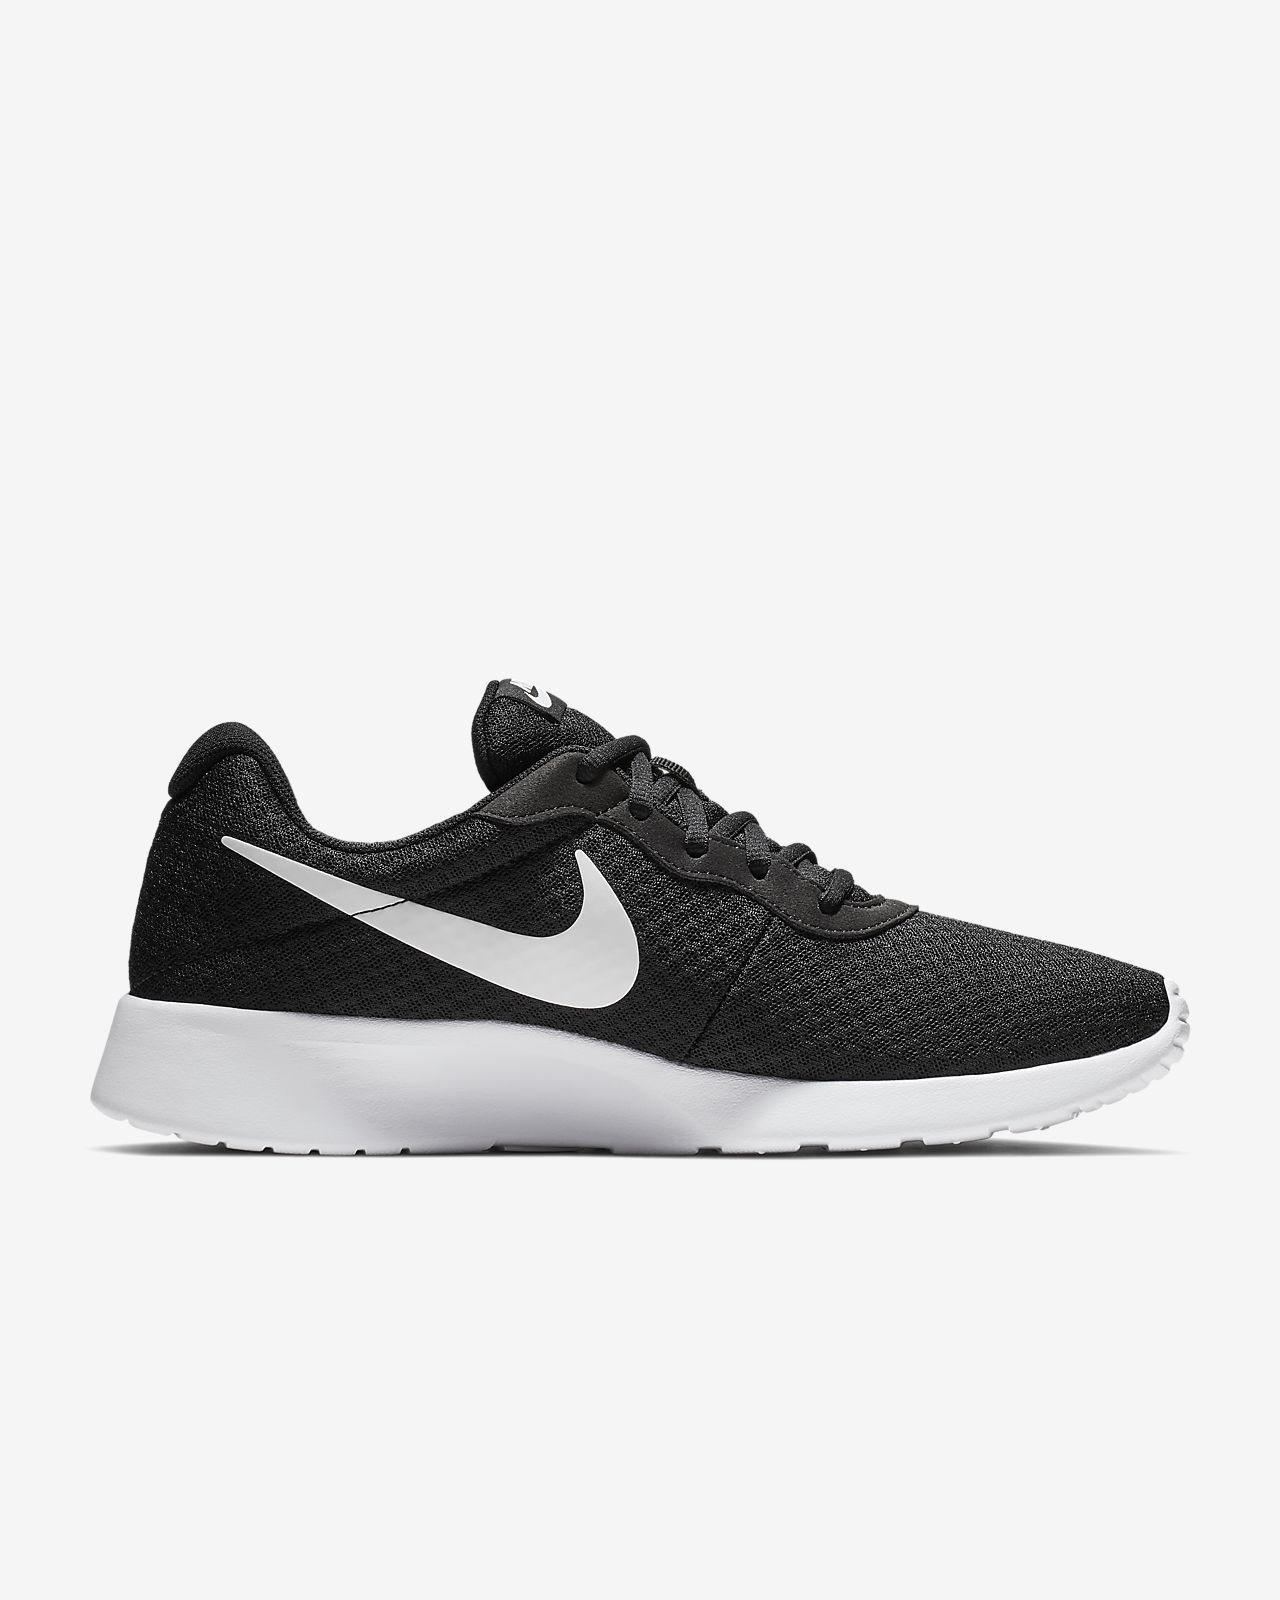 88e3ddcf7e1 Low Resolution Nike Tanjun Men s Shoe Nike Tanjun Men s Shoe